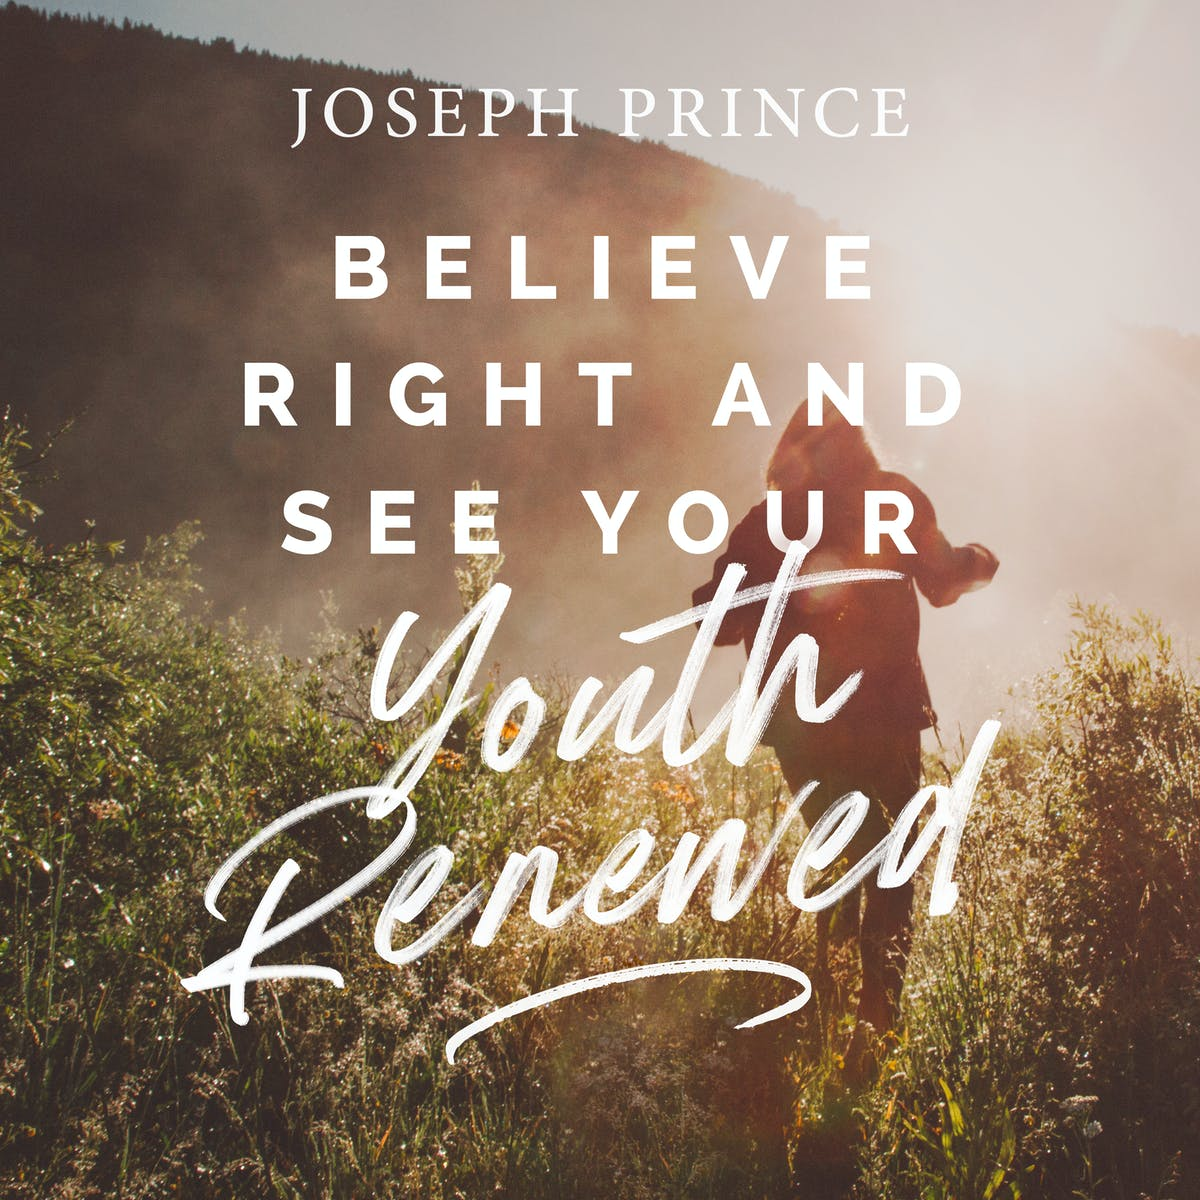 Believe Right And See Your Youth Renewed | Official Joseph